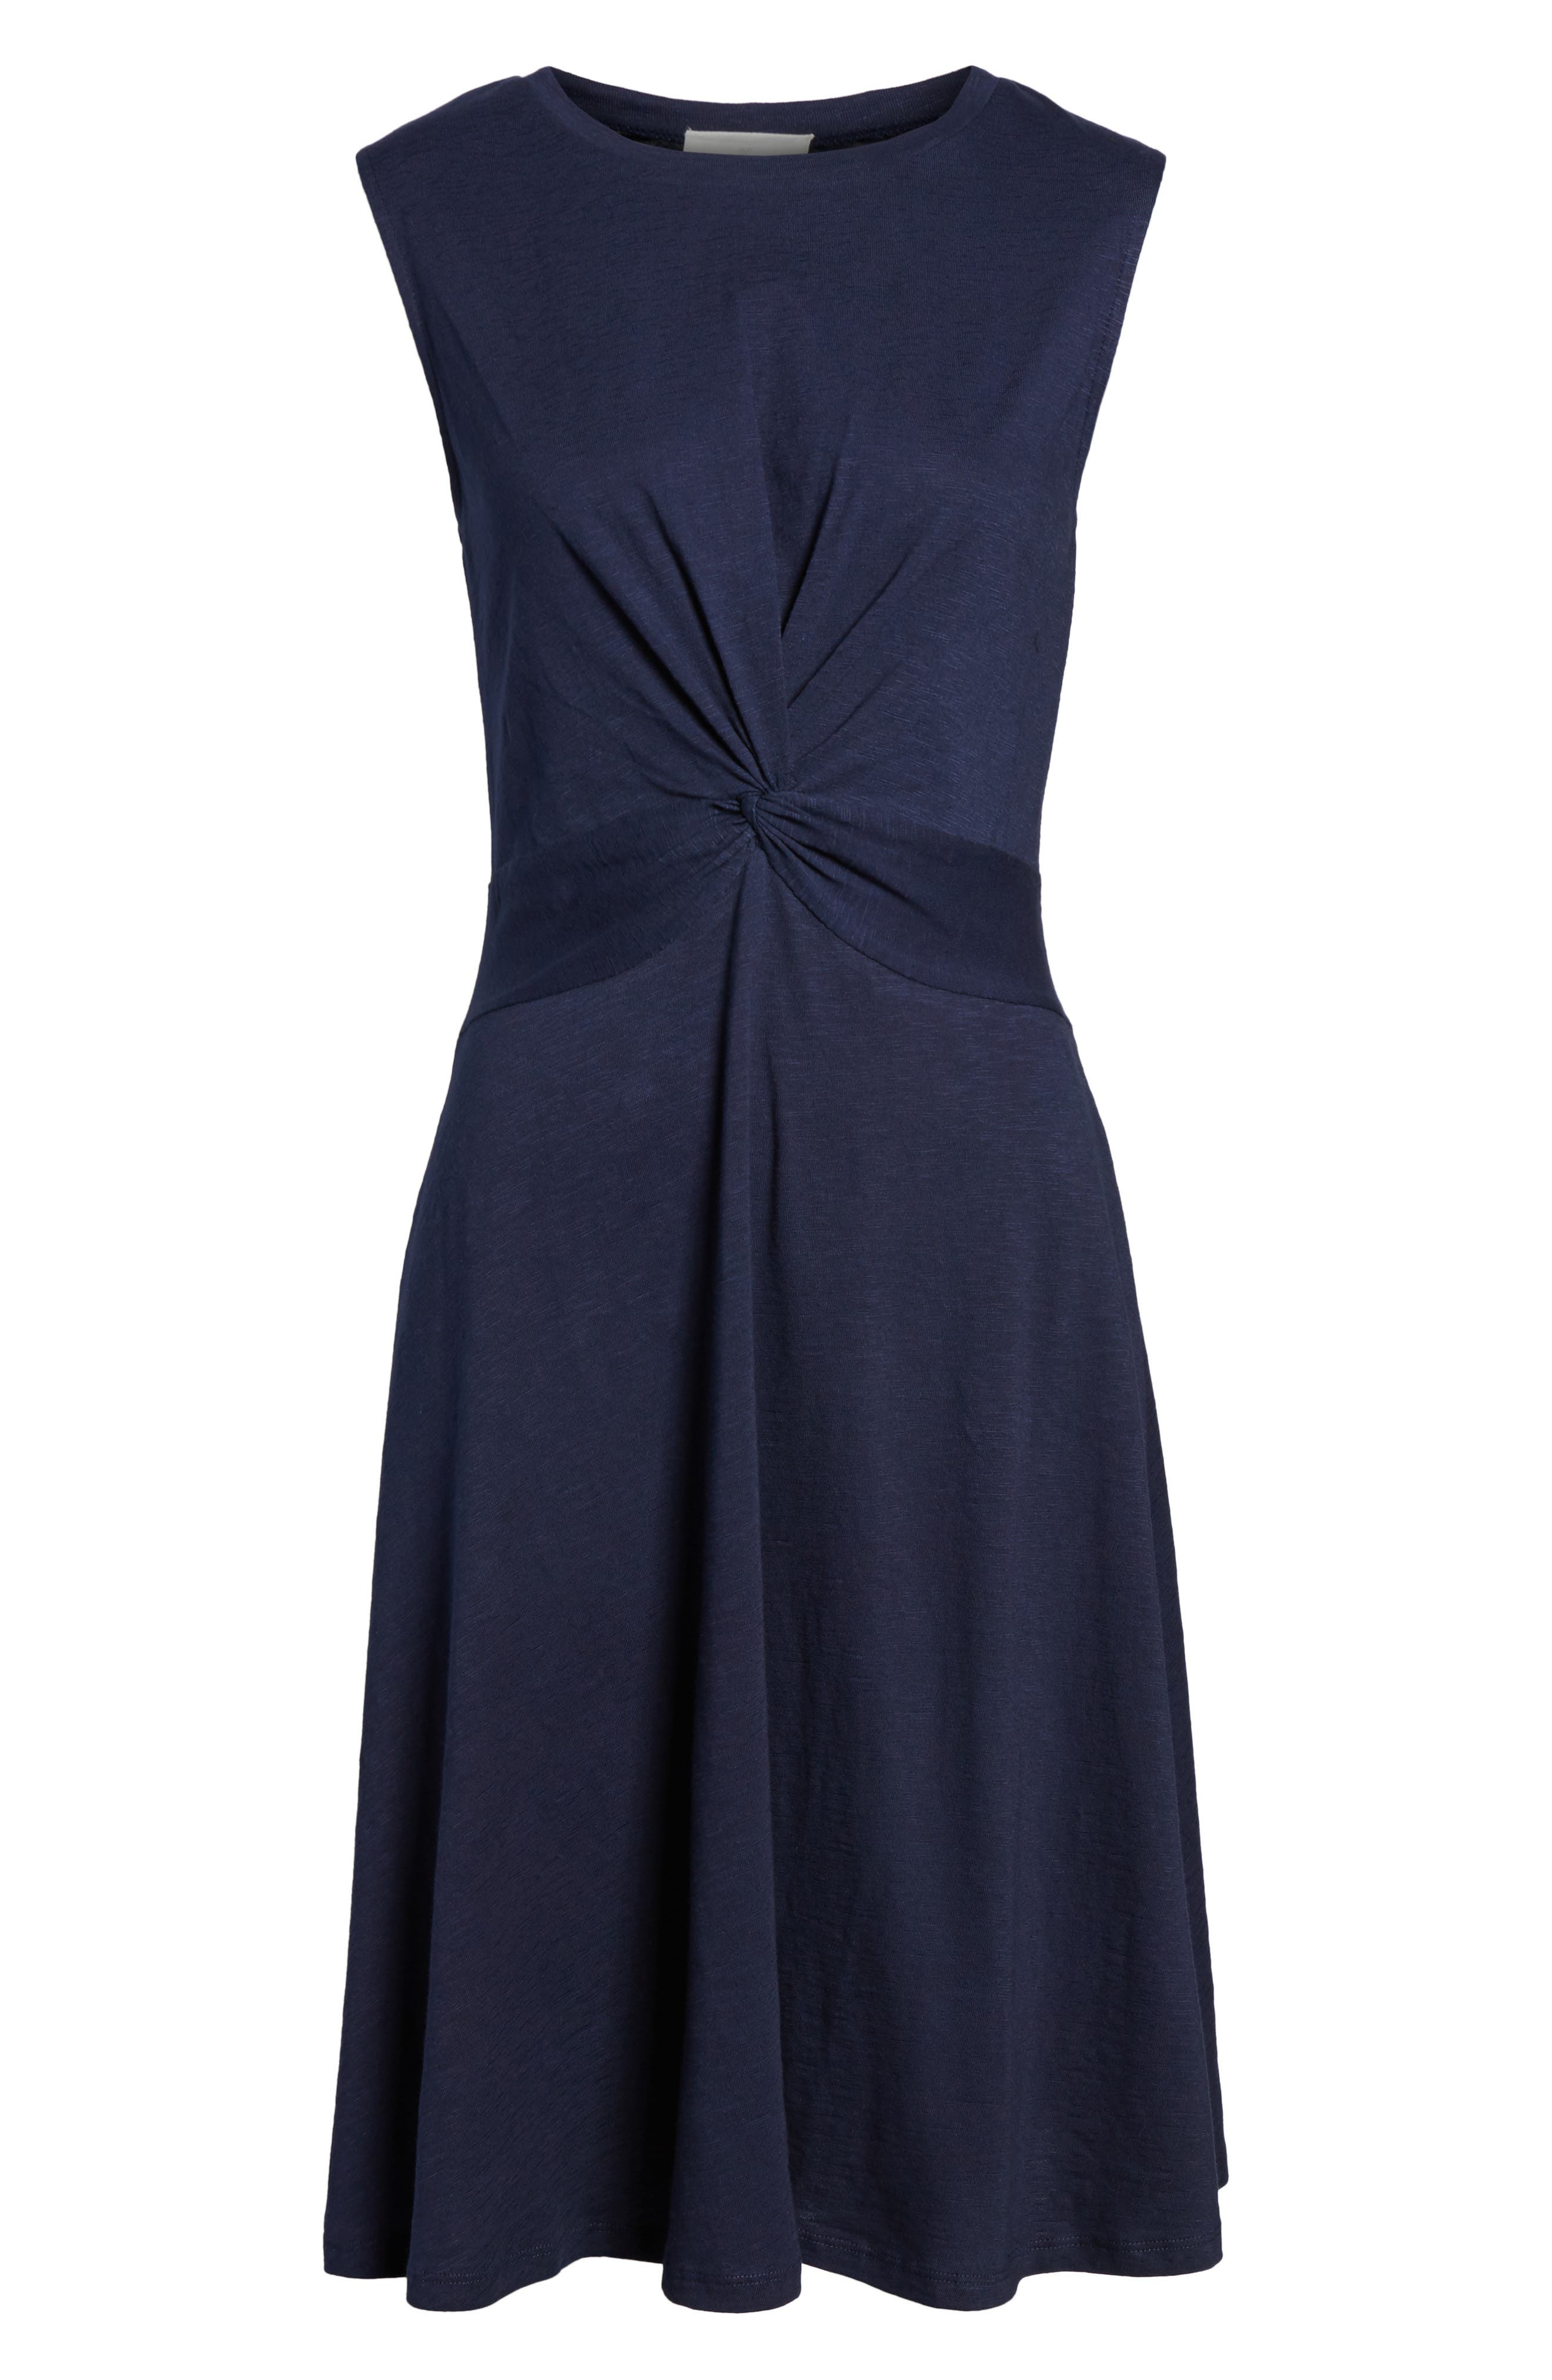 Twist Front Knit Dress,                             Alternate thumbnail 7, color,                             Navy Peacoat